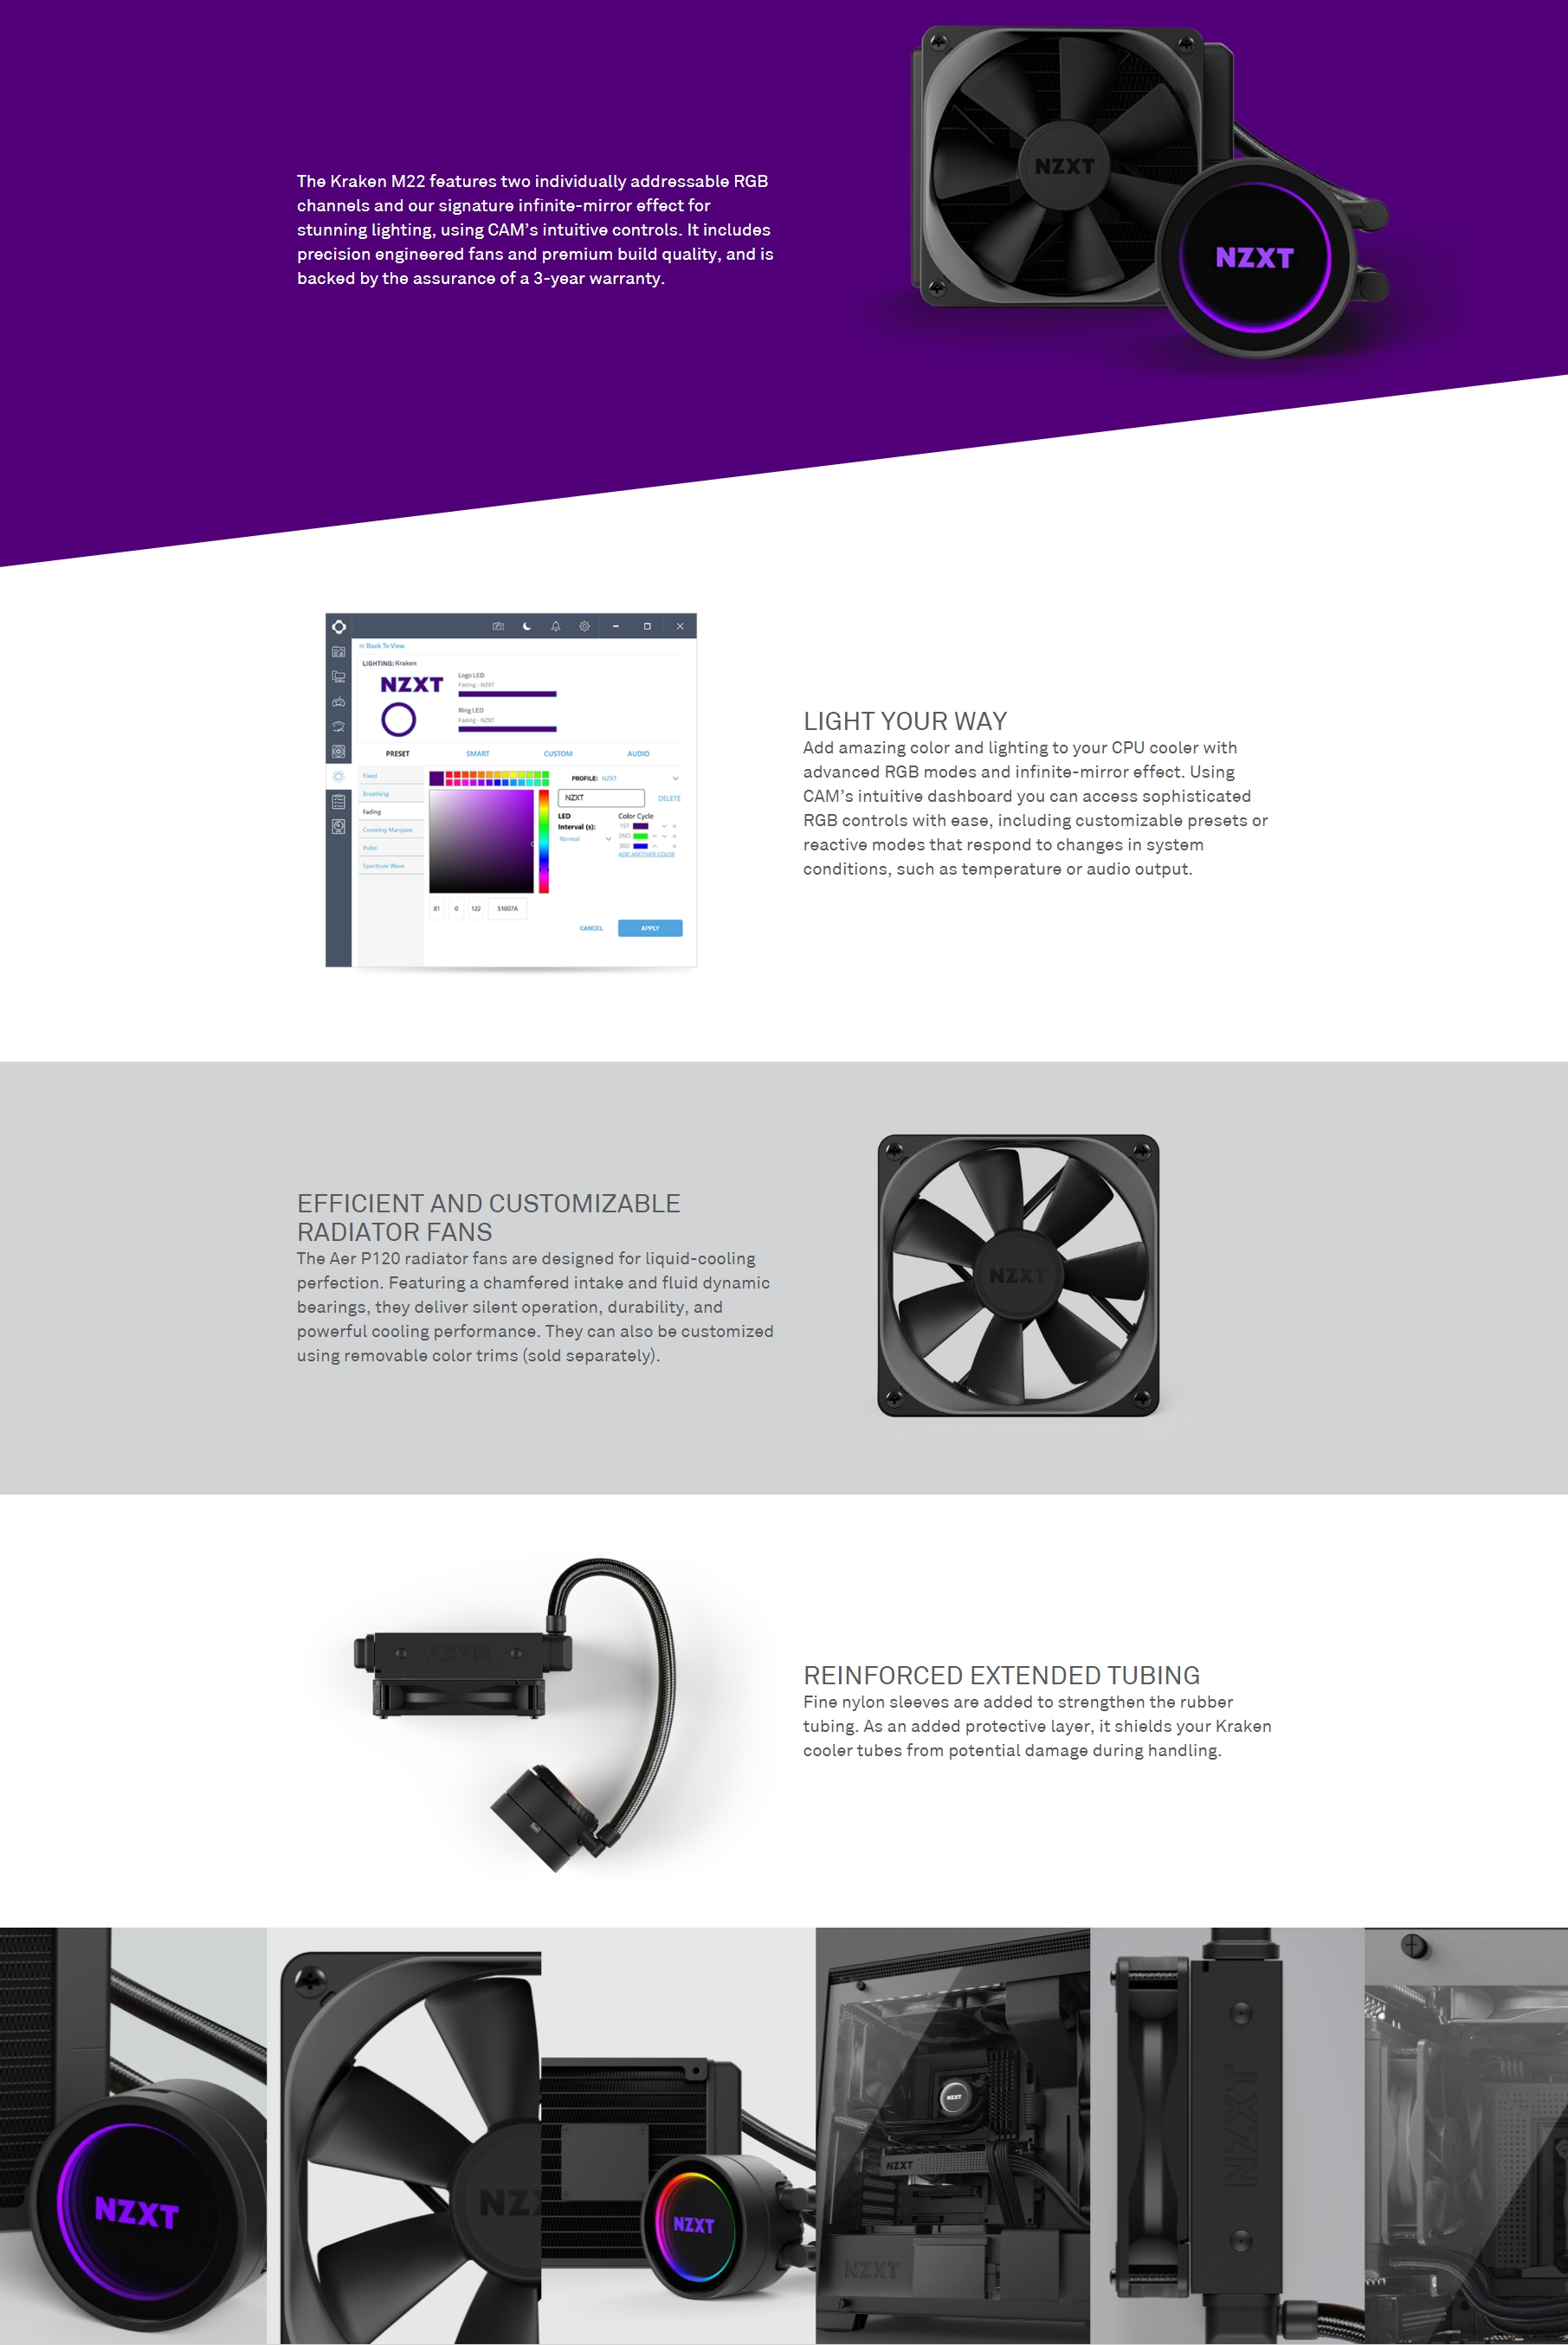 A large marketing image providing additional information about the product NZXT Kraken M22 120mm AIO Liquid CPU Cooler - Additional alt info not provided